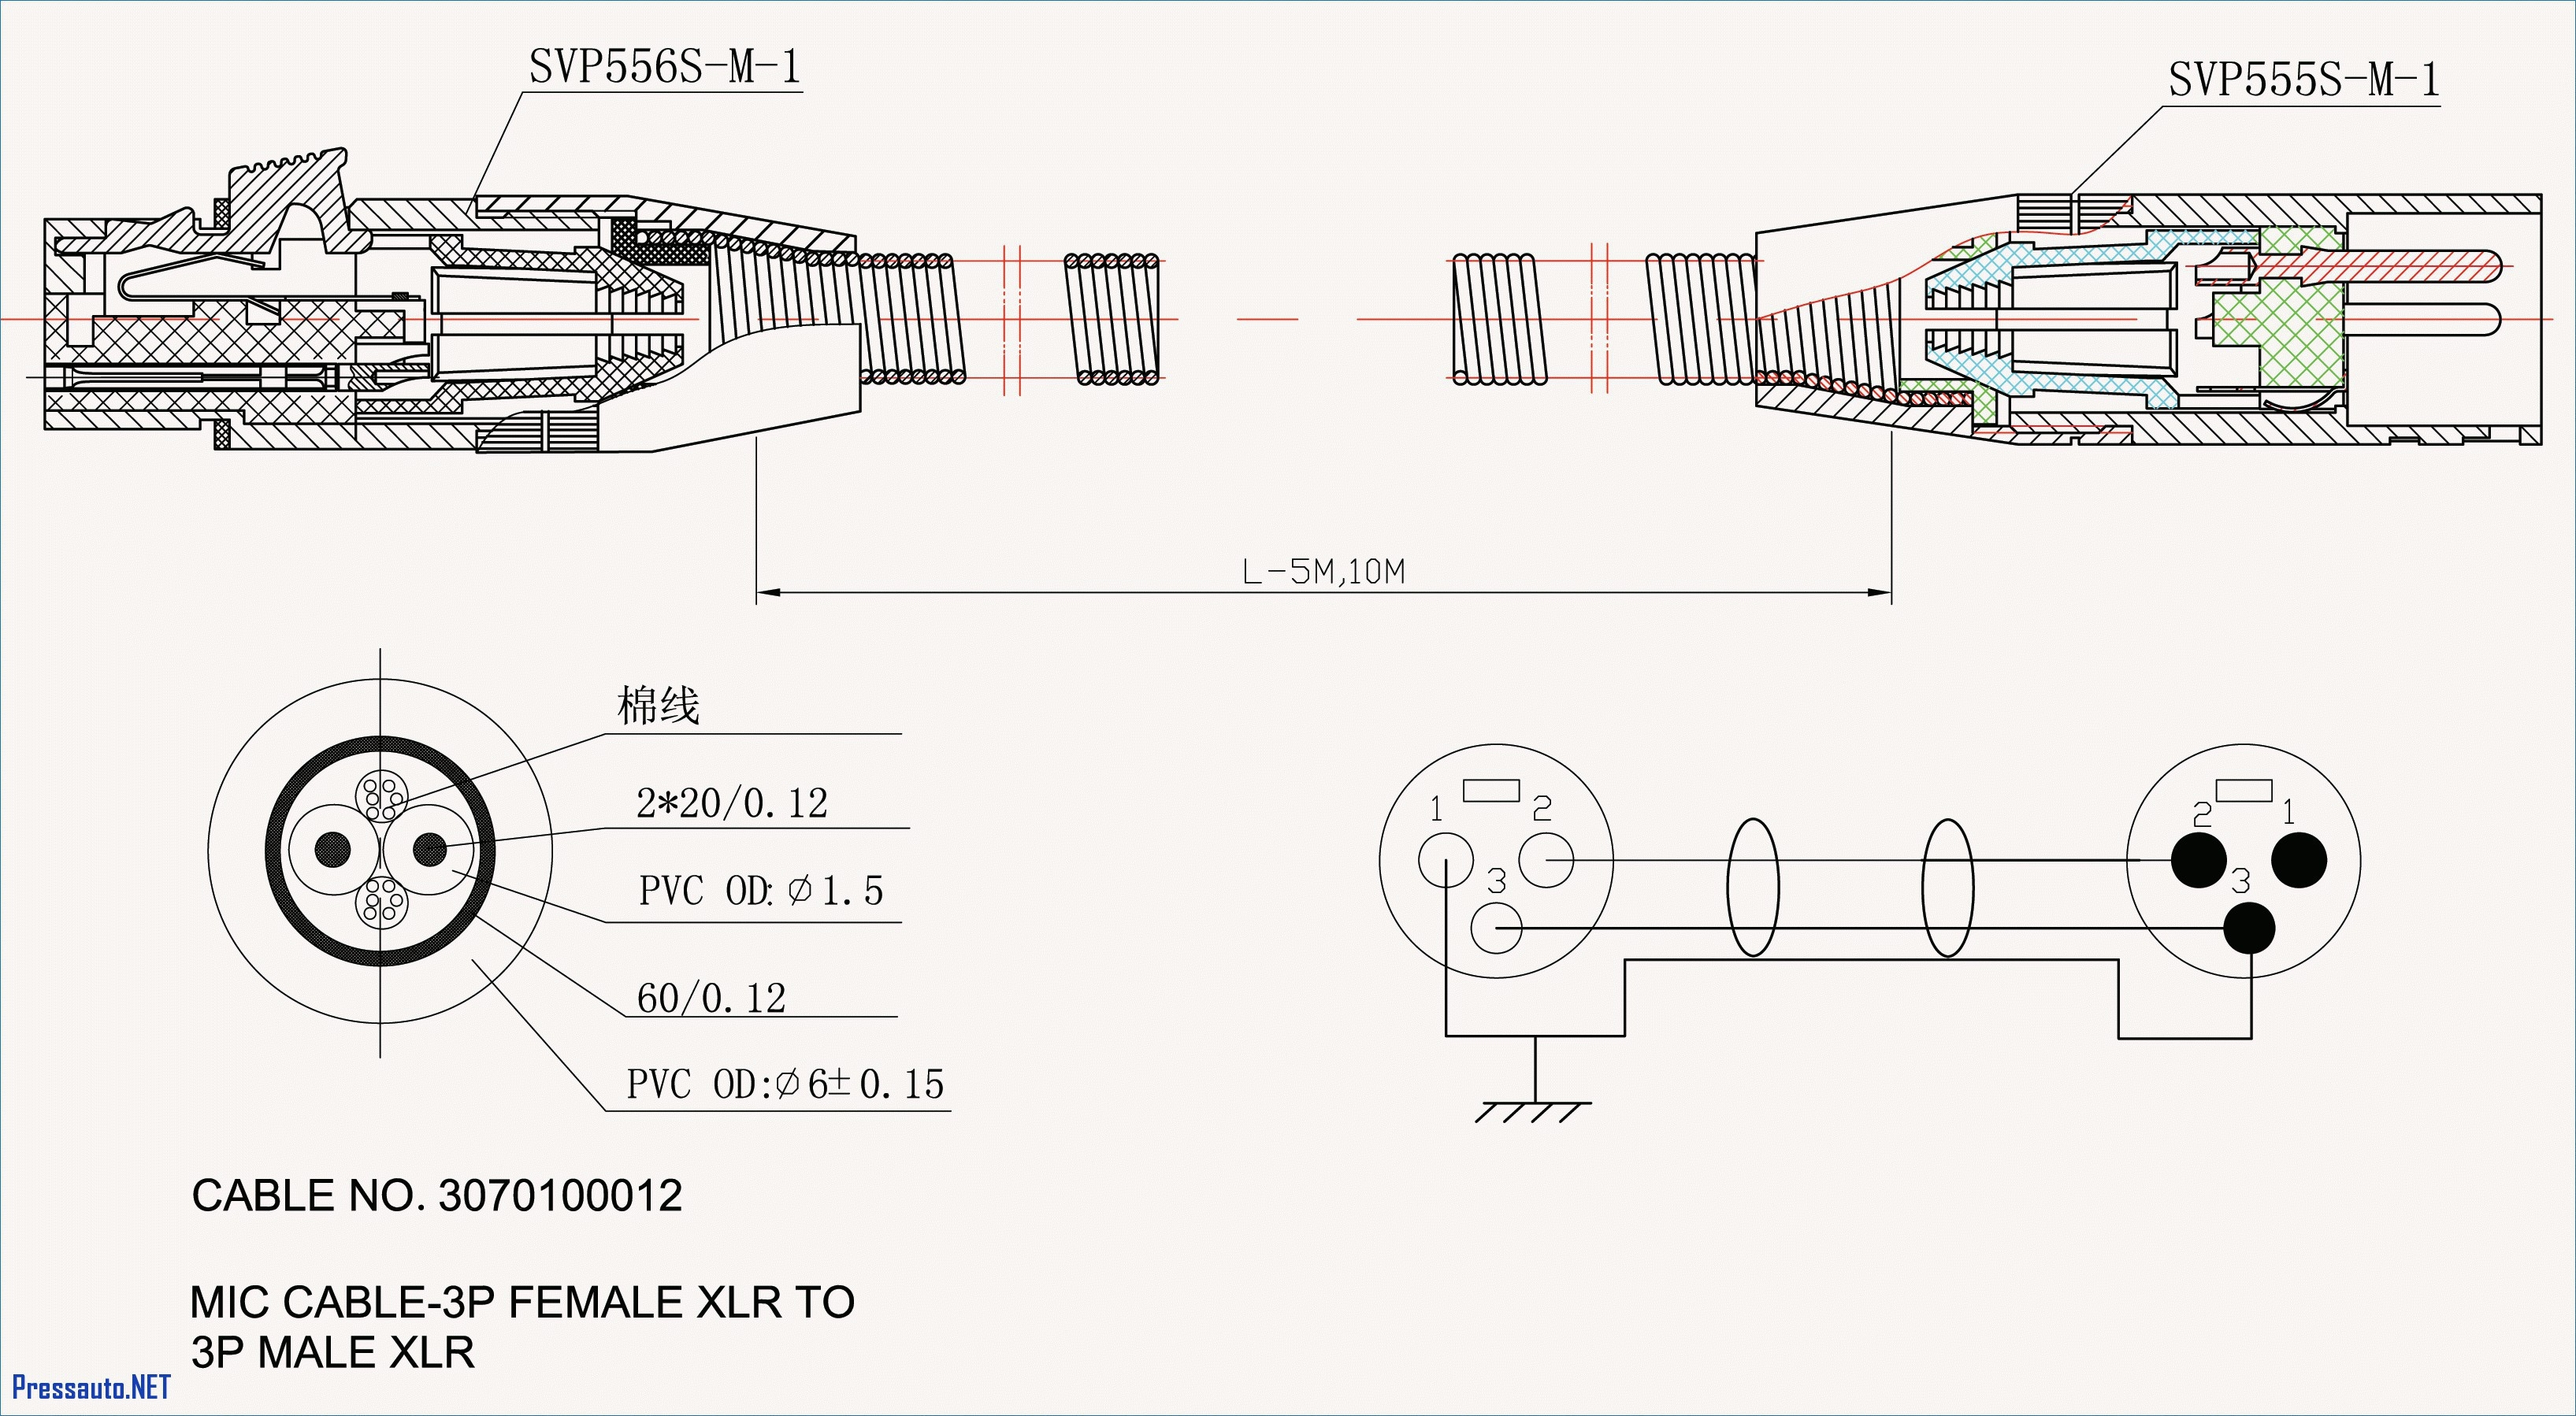 Gm Alternator Wiring Schematic | Free Wiring Diagram on